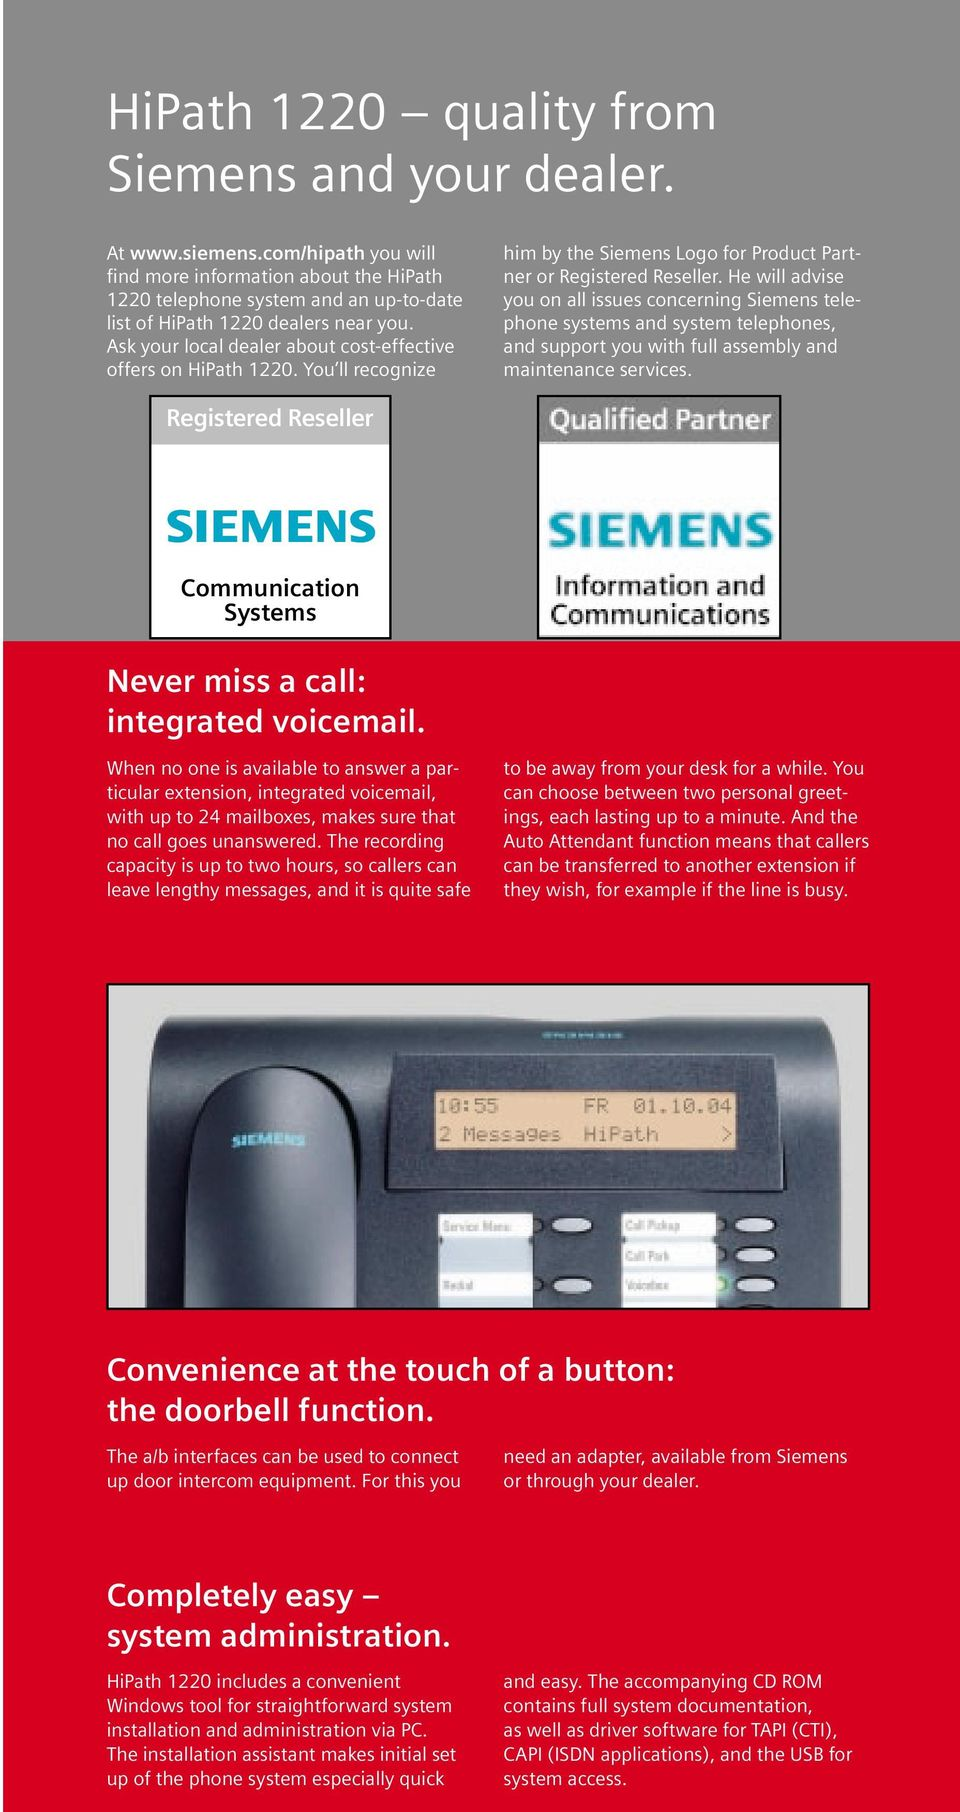 Ask your local dealer about cost-effective offers on HiPath 1220. You ll recognize him by the Siemens Logo for Product Partner or Registered Reseller.